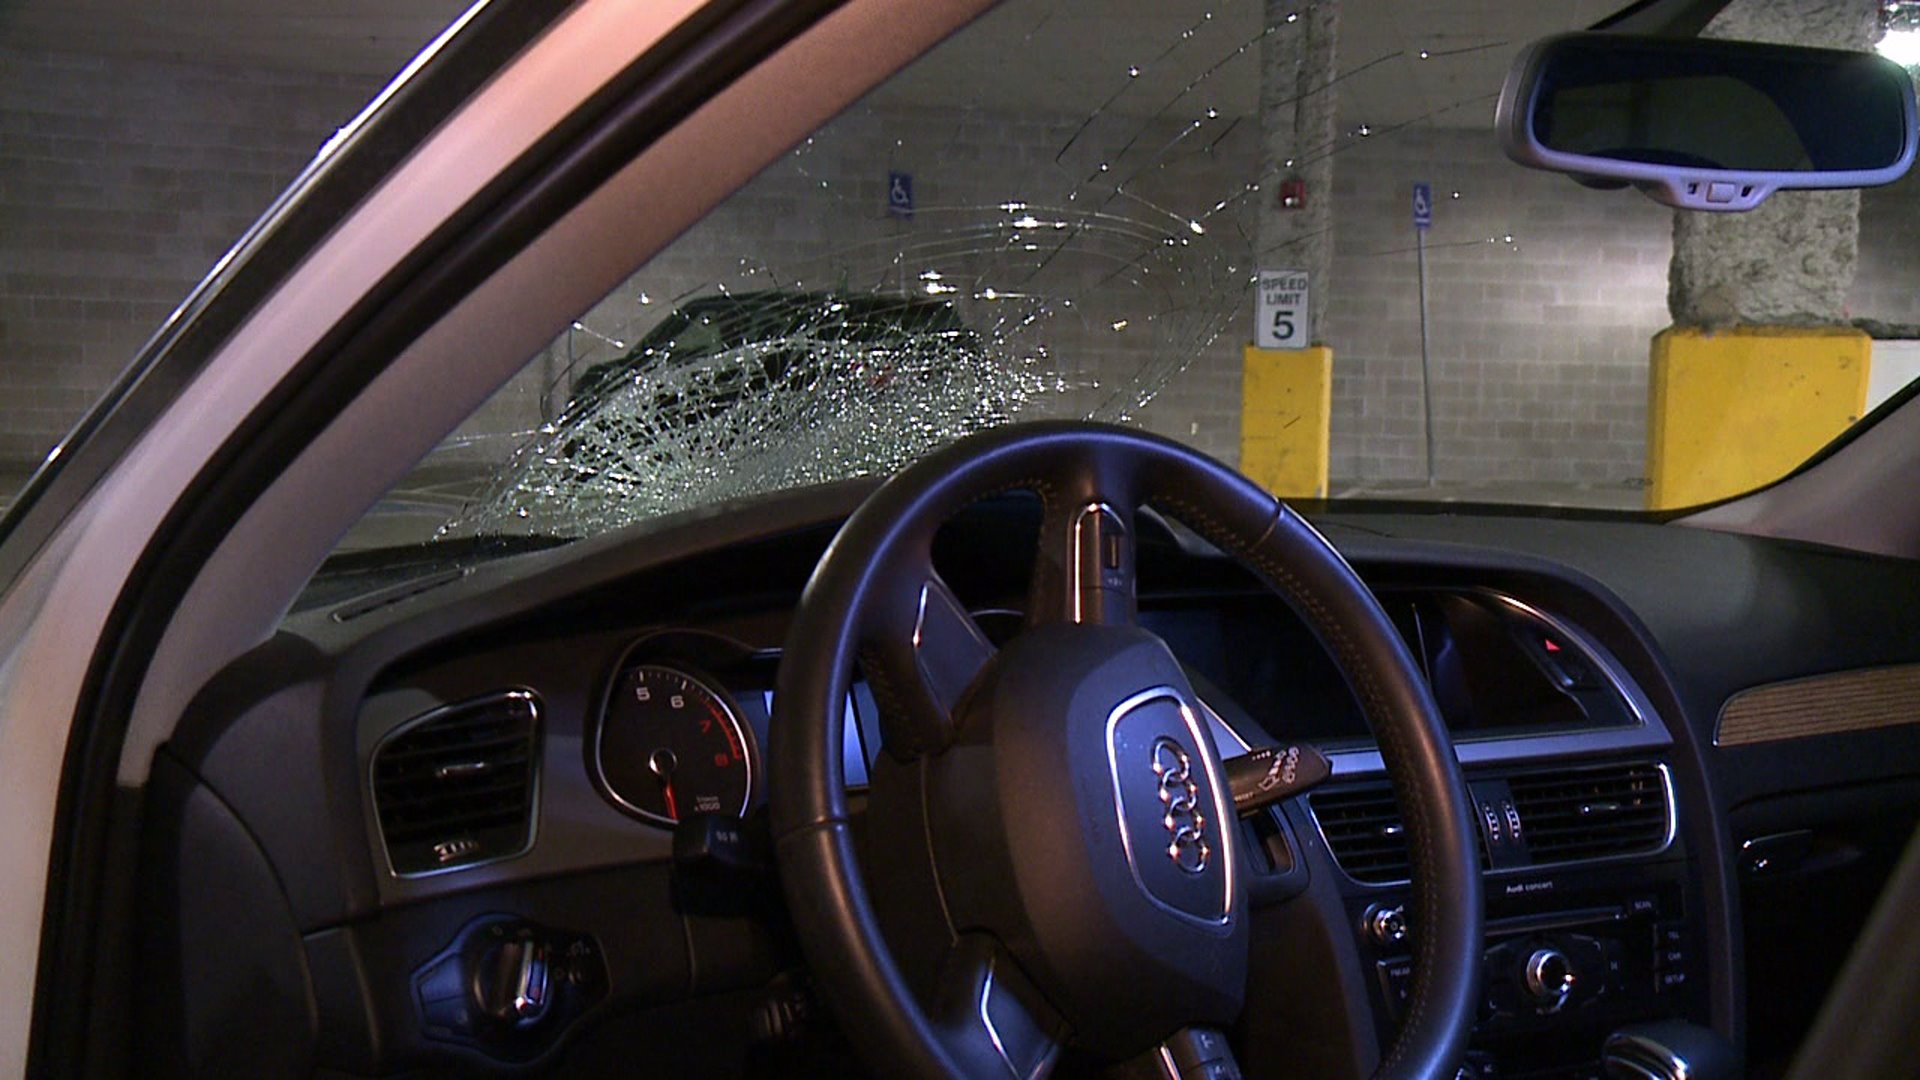 Road debris on I-25 smashes windshield